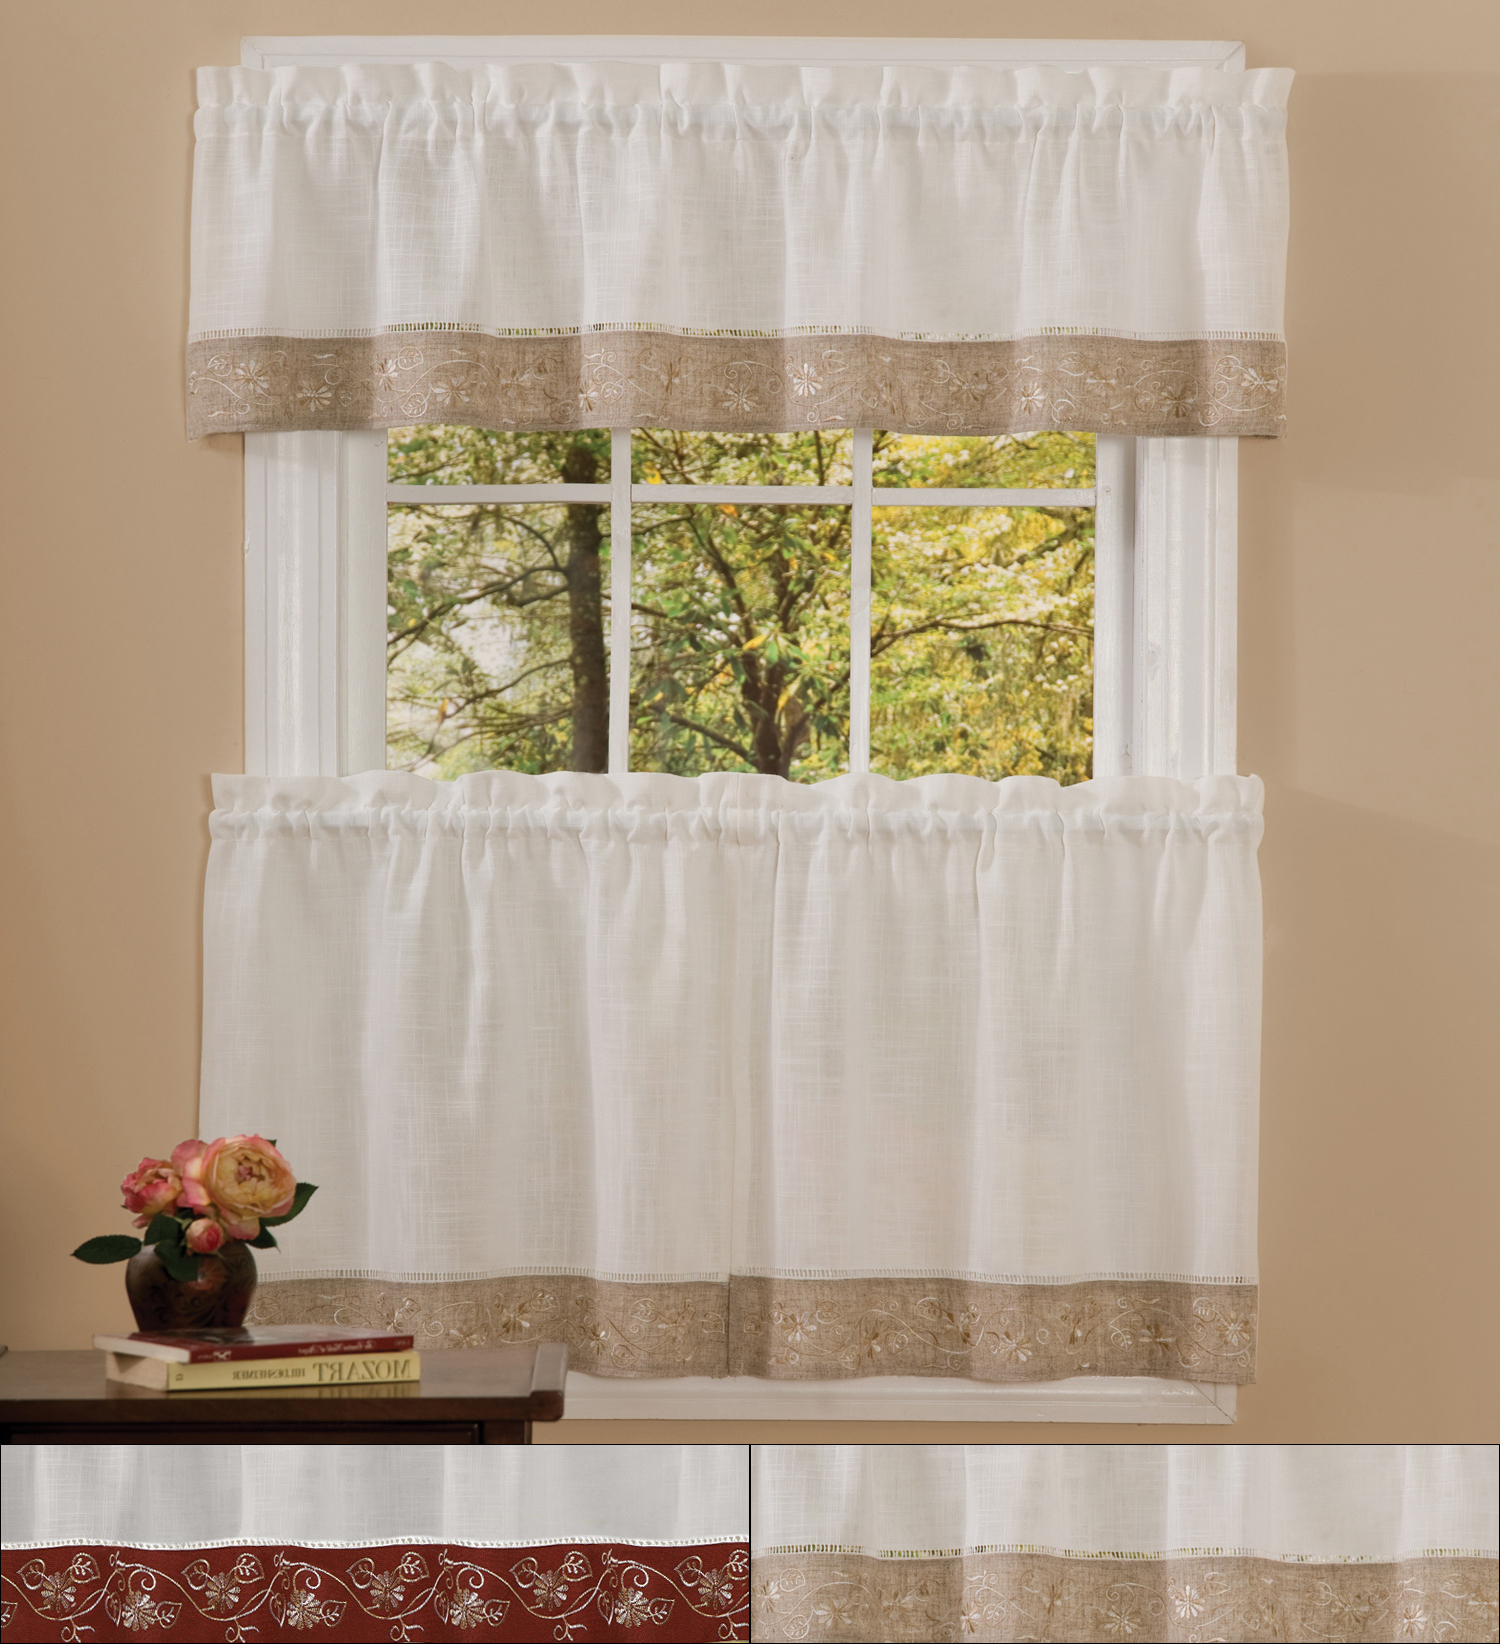 "Details About Oakwood Linen Style Kitchen Window Curtain 24"" Tiers & Valance Set Regarding Well Liked Oakwood Linen Style Decorative Curtain Tier Sets (View 2 of 20)"